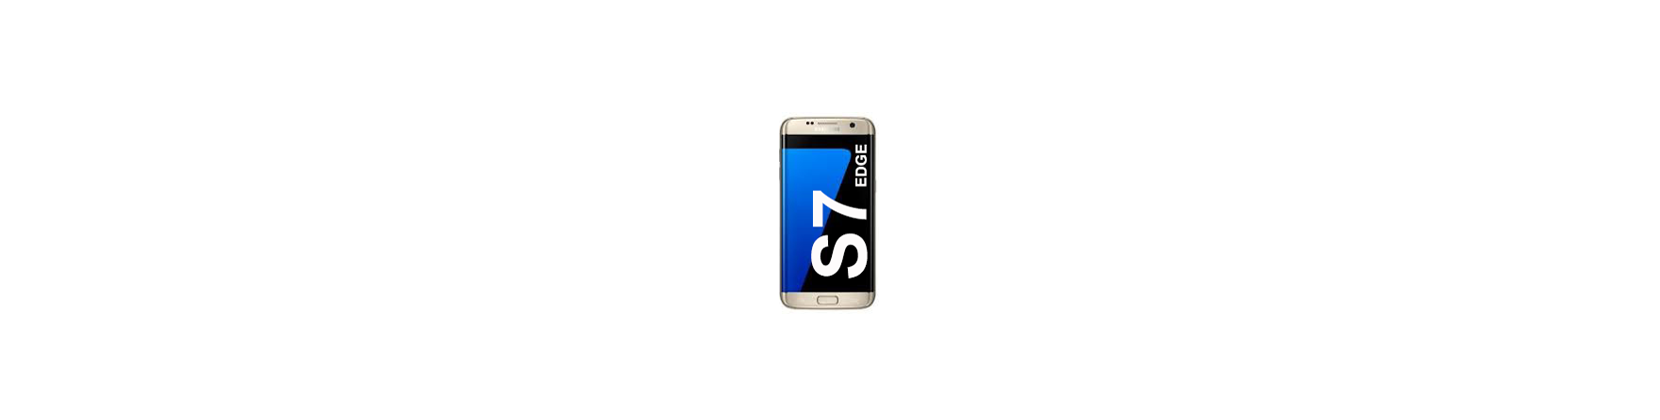 Spare parts for Samsung Galaxy S7 Edge G935F